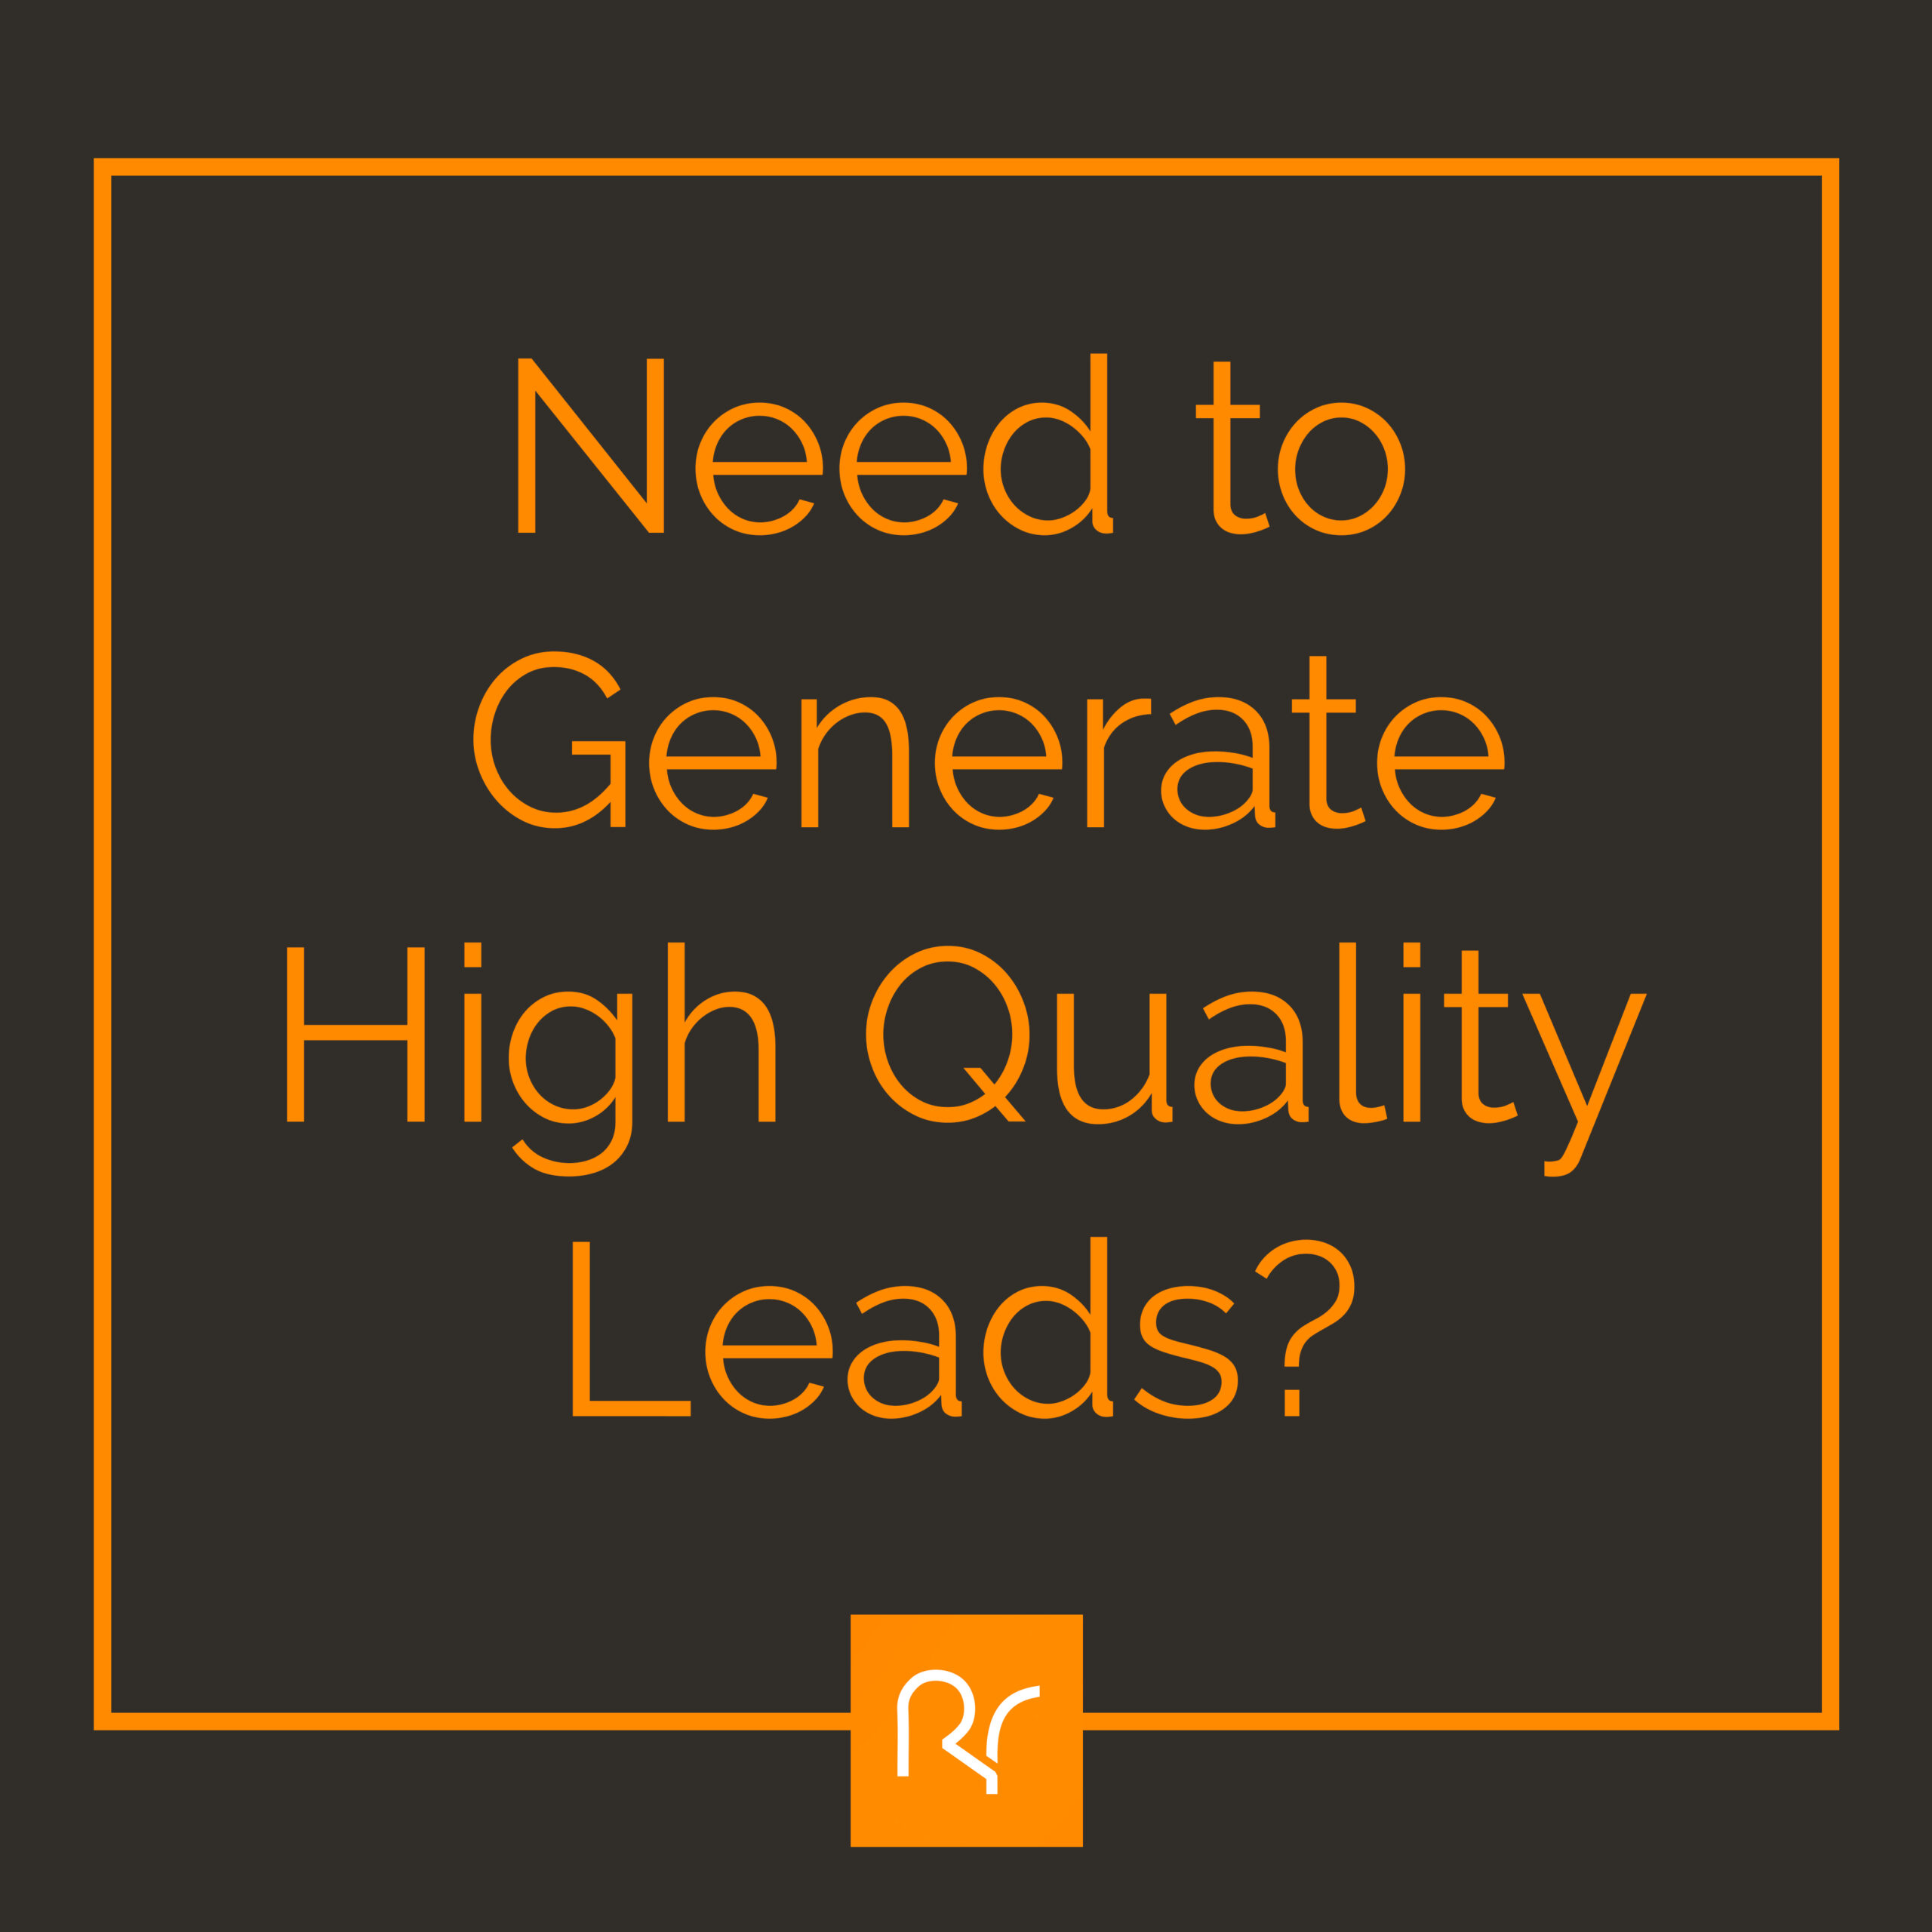 Highquality leads